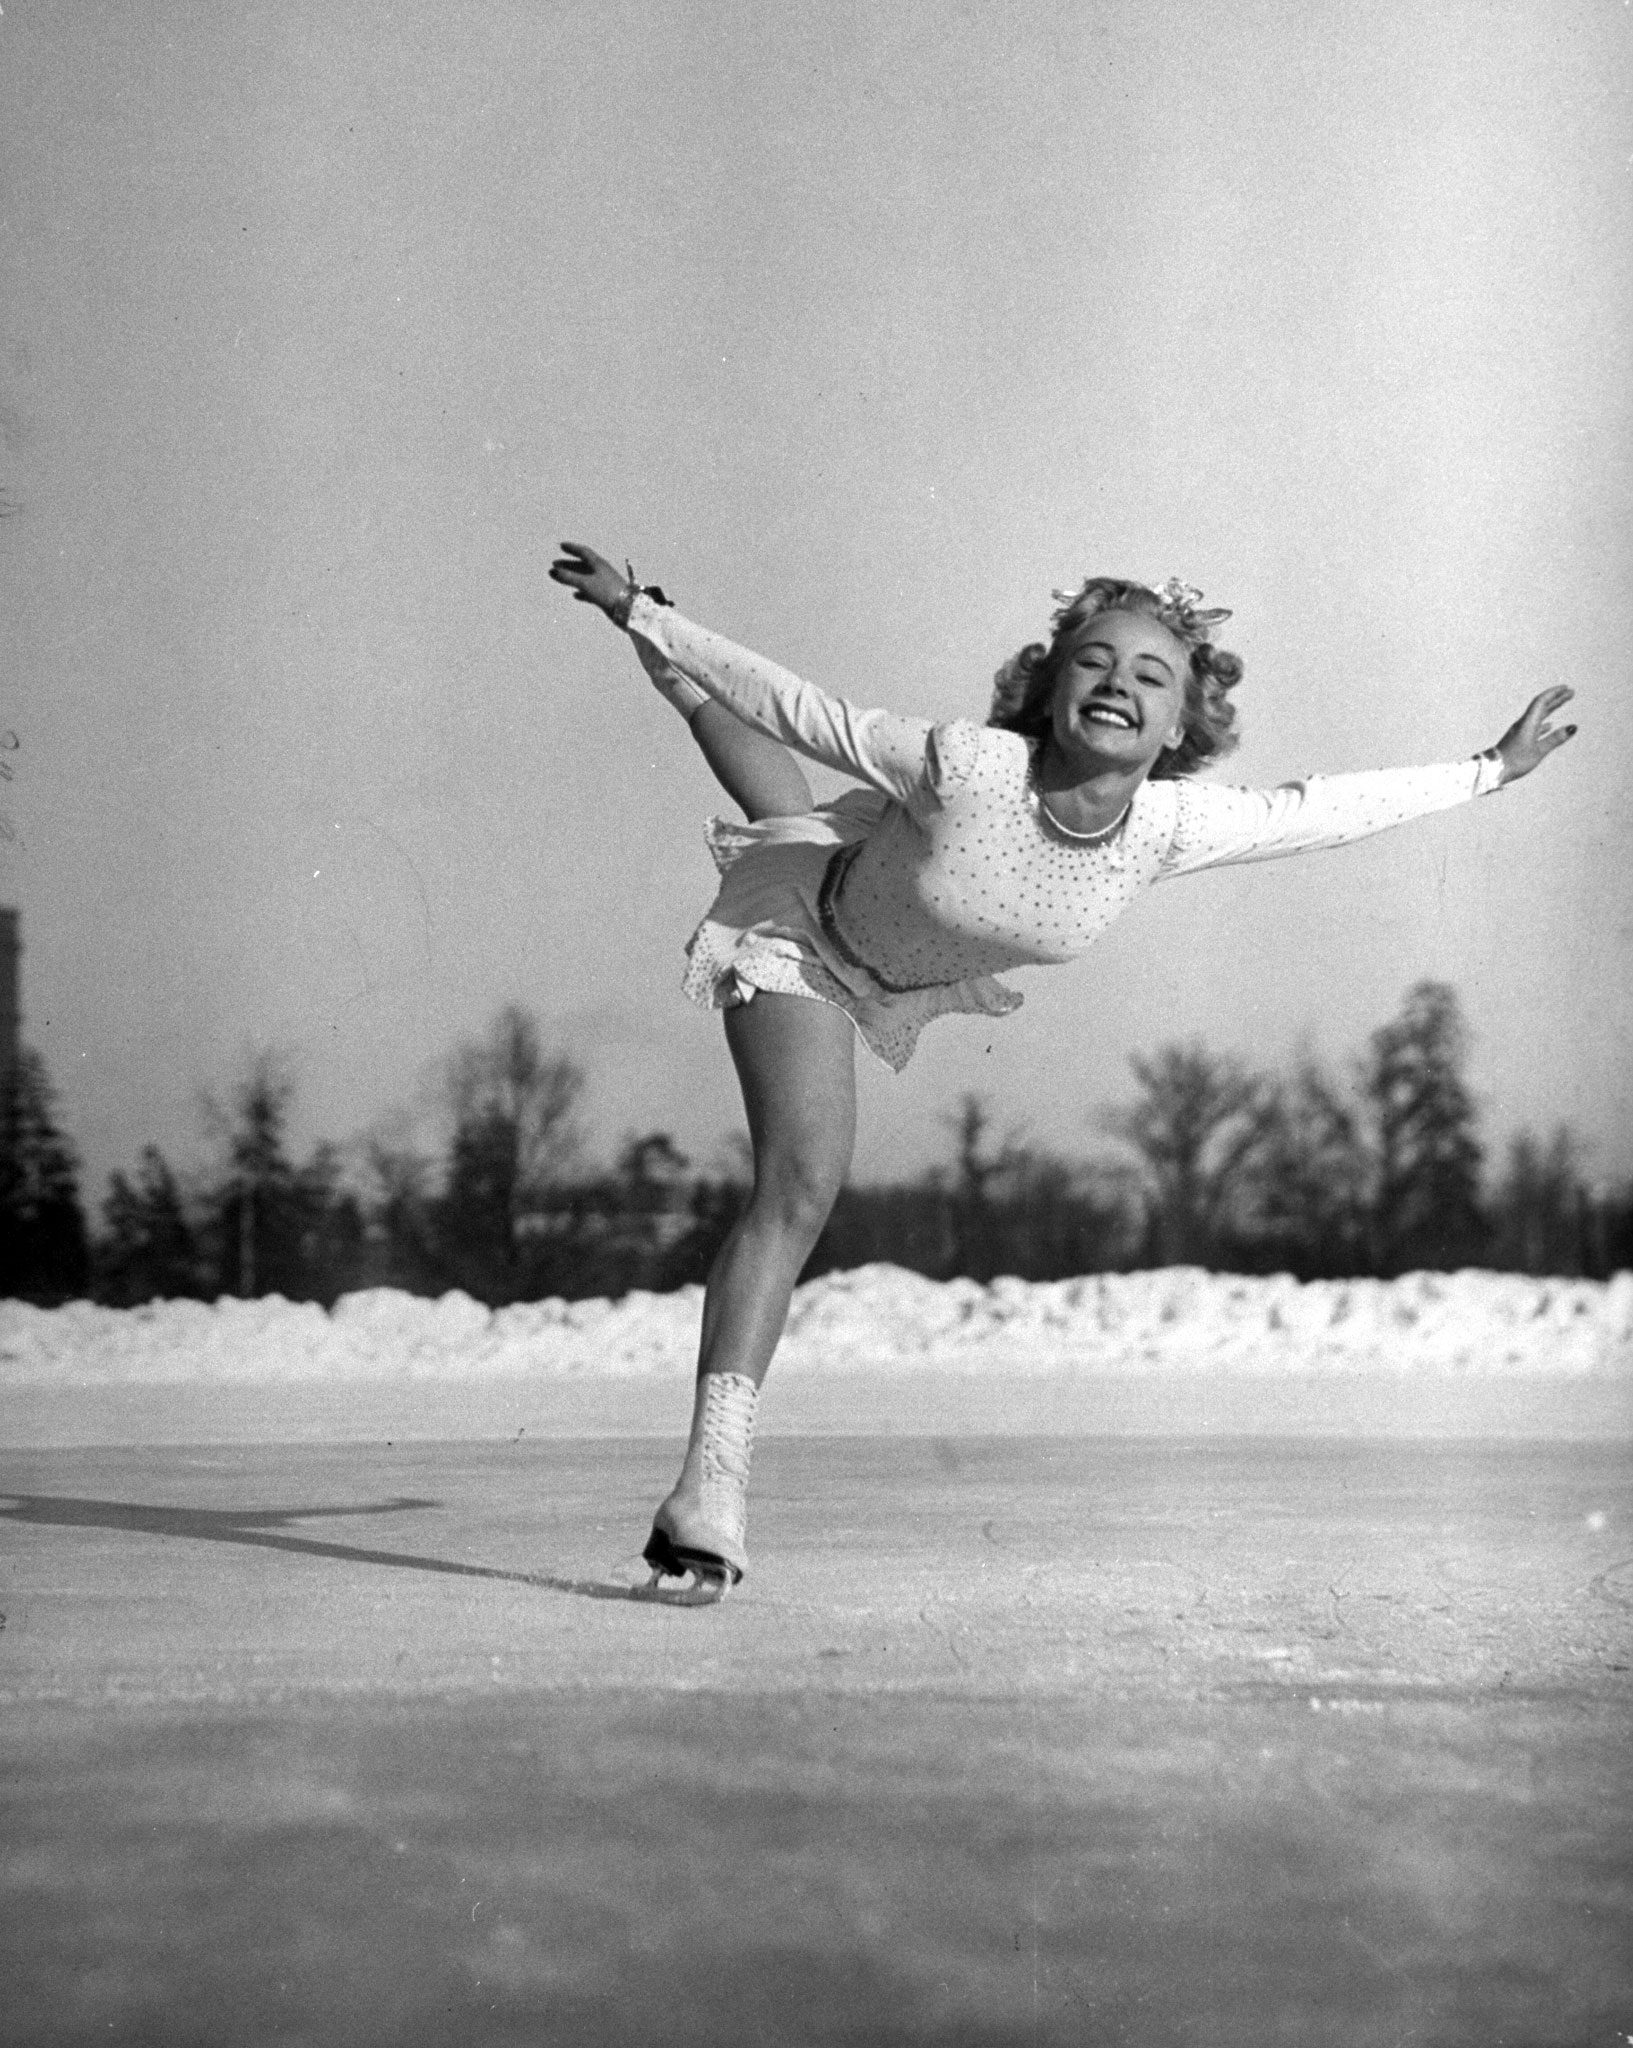 <b>Caption from LIFE.</b> Gretchen Merrill, U.S. champion, was Miss Scott's only serious rival for world title. She spoiled her chances on last day by falling down, won third place.